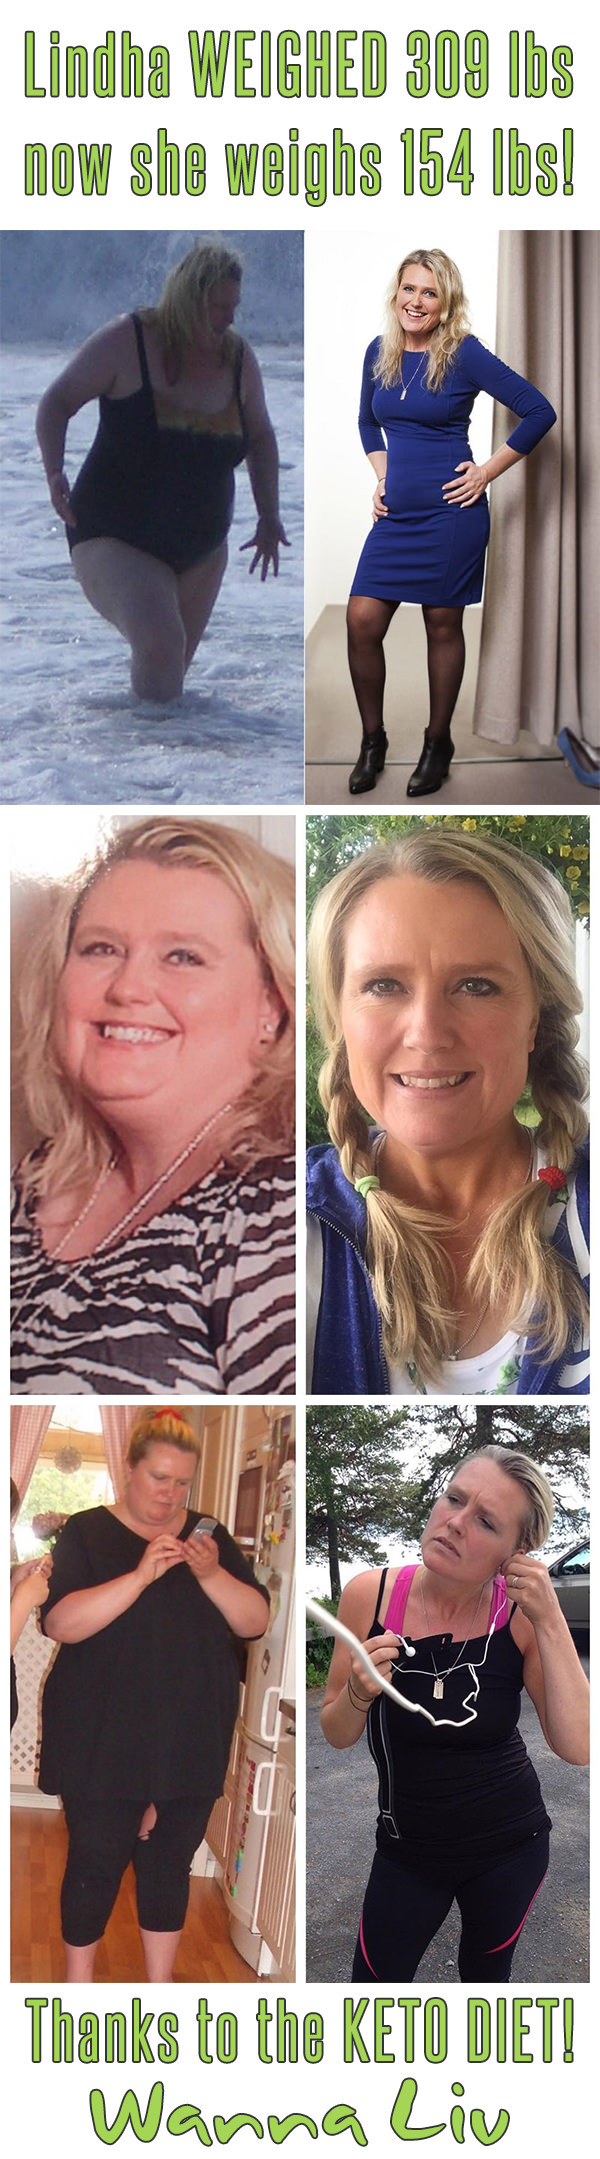 Lindha WEIGHED 309 lbs now she weighs 154 lbs! Thanks to the KETO DIET! - Keto Success Stories #7 via Wanna Liv